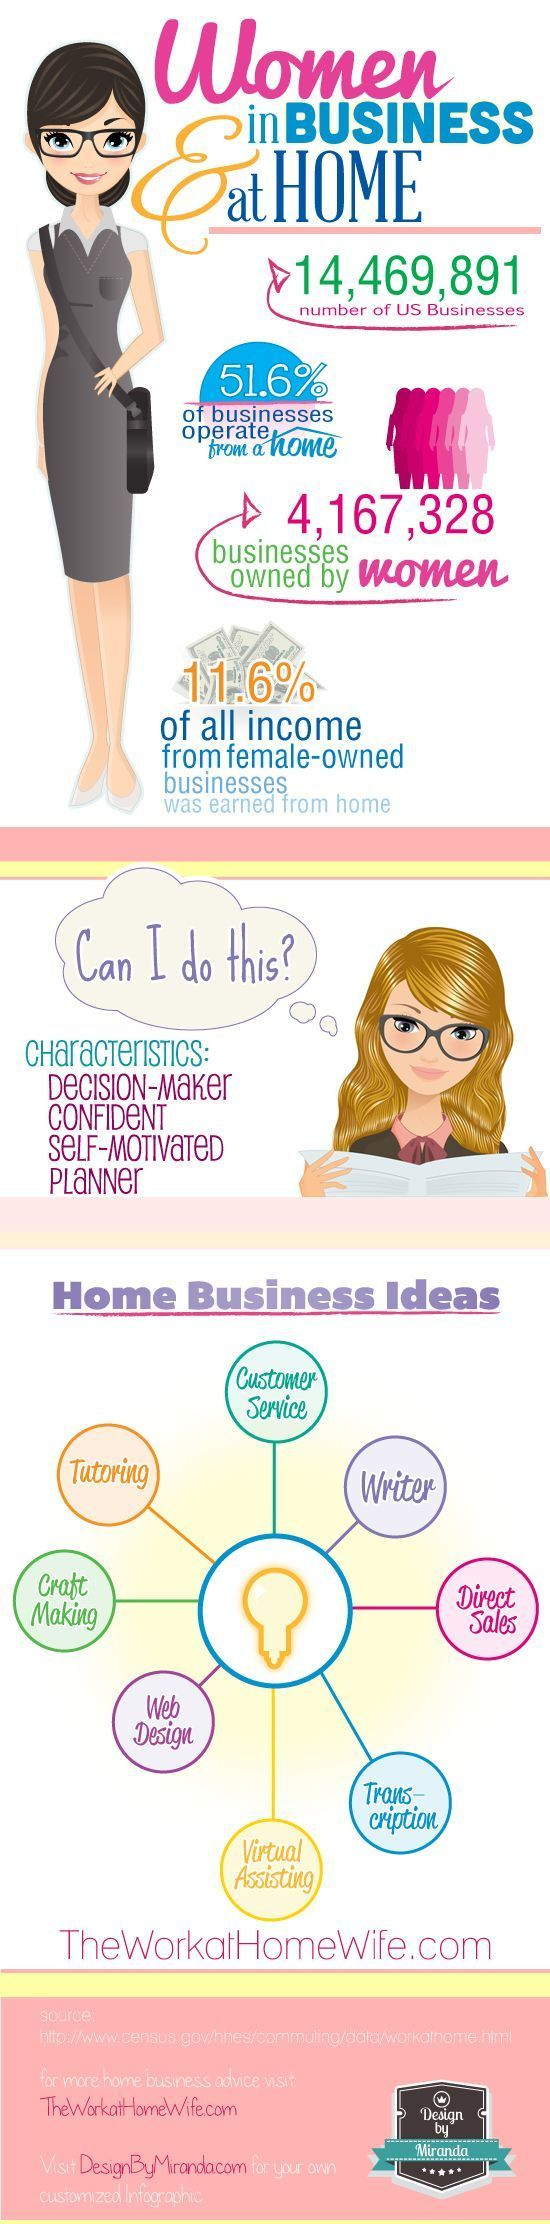 Have you ever considered starting a home biz? Here is a great infographic about women in home-based business. business ideas #smallbusiness small business ideas wahm ideas